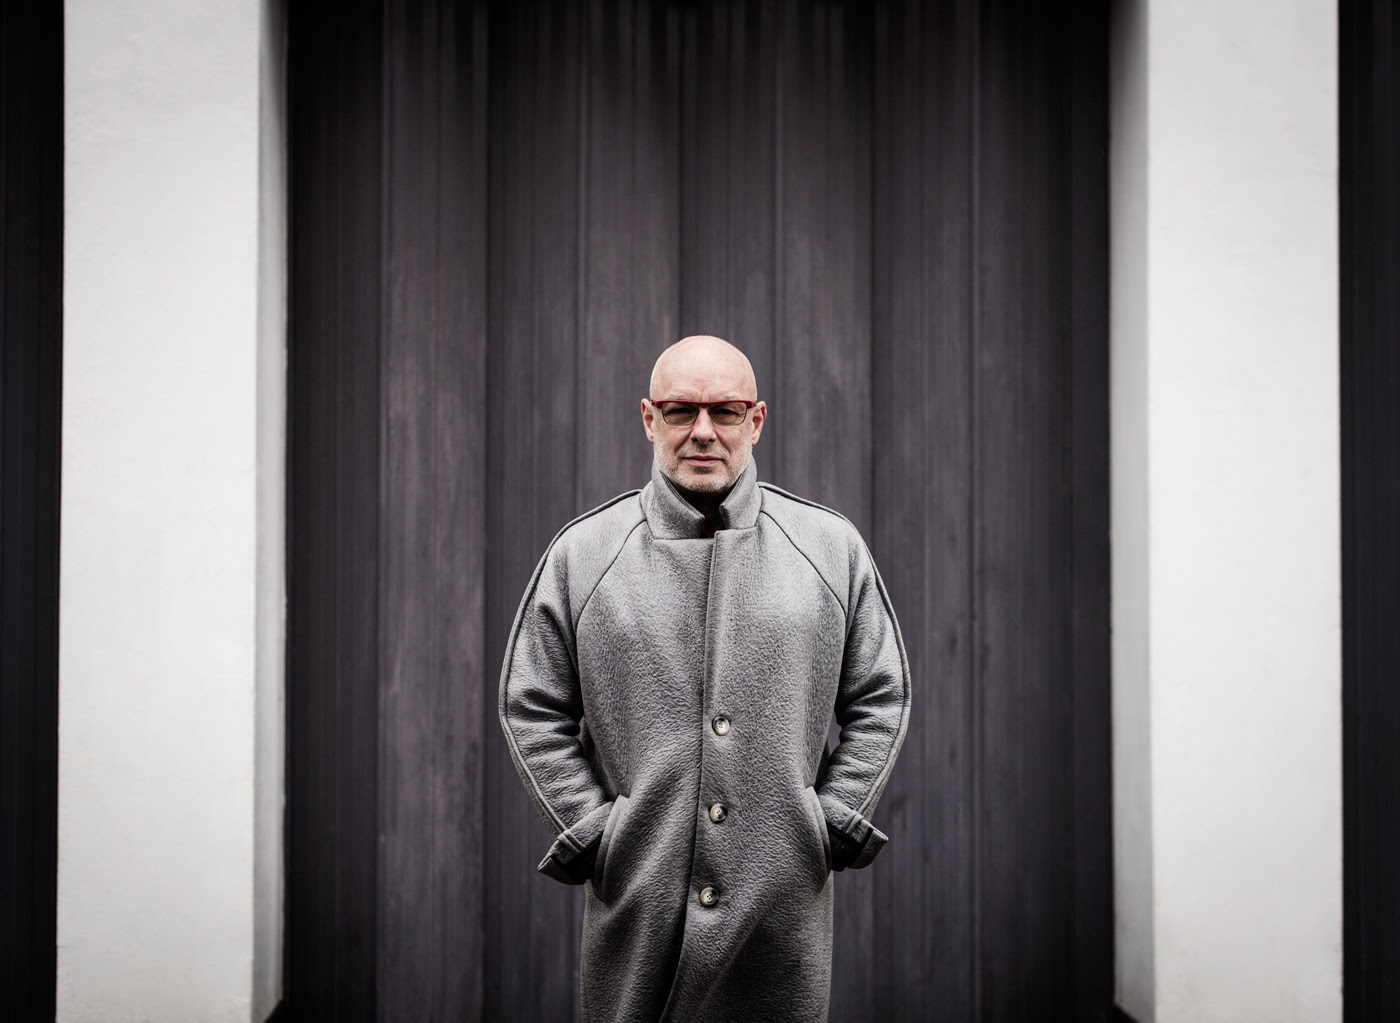 Brian Eno announces new album 'The Ship'.the full-length drops on April 29th via Warp Records,